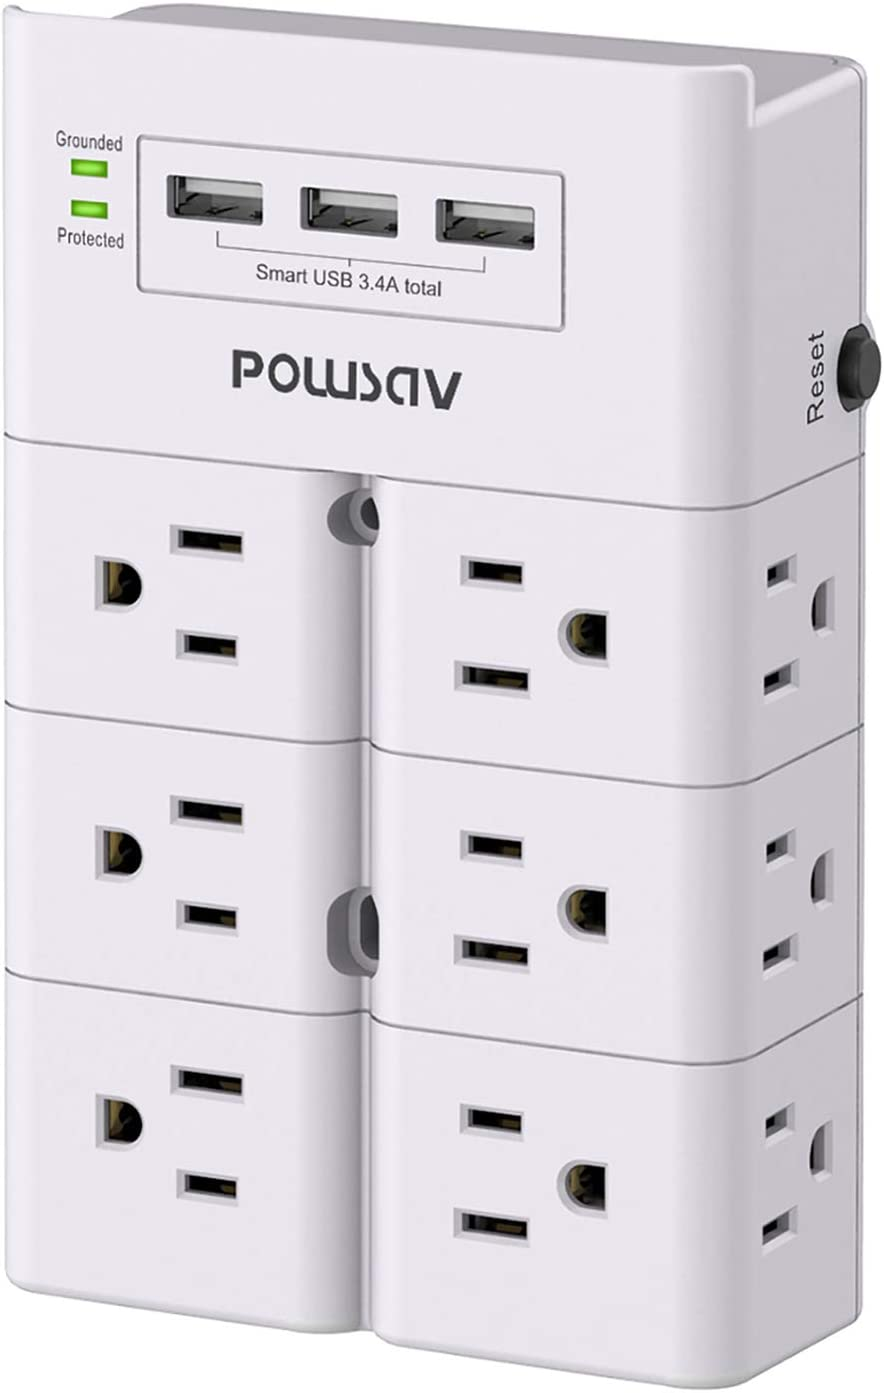 Multi Plug Outlet, Outlet Splitter, POWSAV Surge Protector Wall Mount with 12-Outlet Extender and 3 USB Ports(Smart 3.4A Total) for Home, Office, Dorm Essentials, Hotel, White, ETL Listed